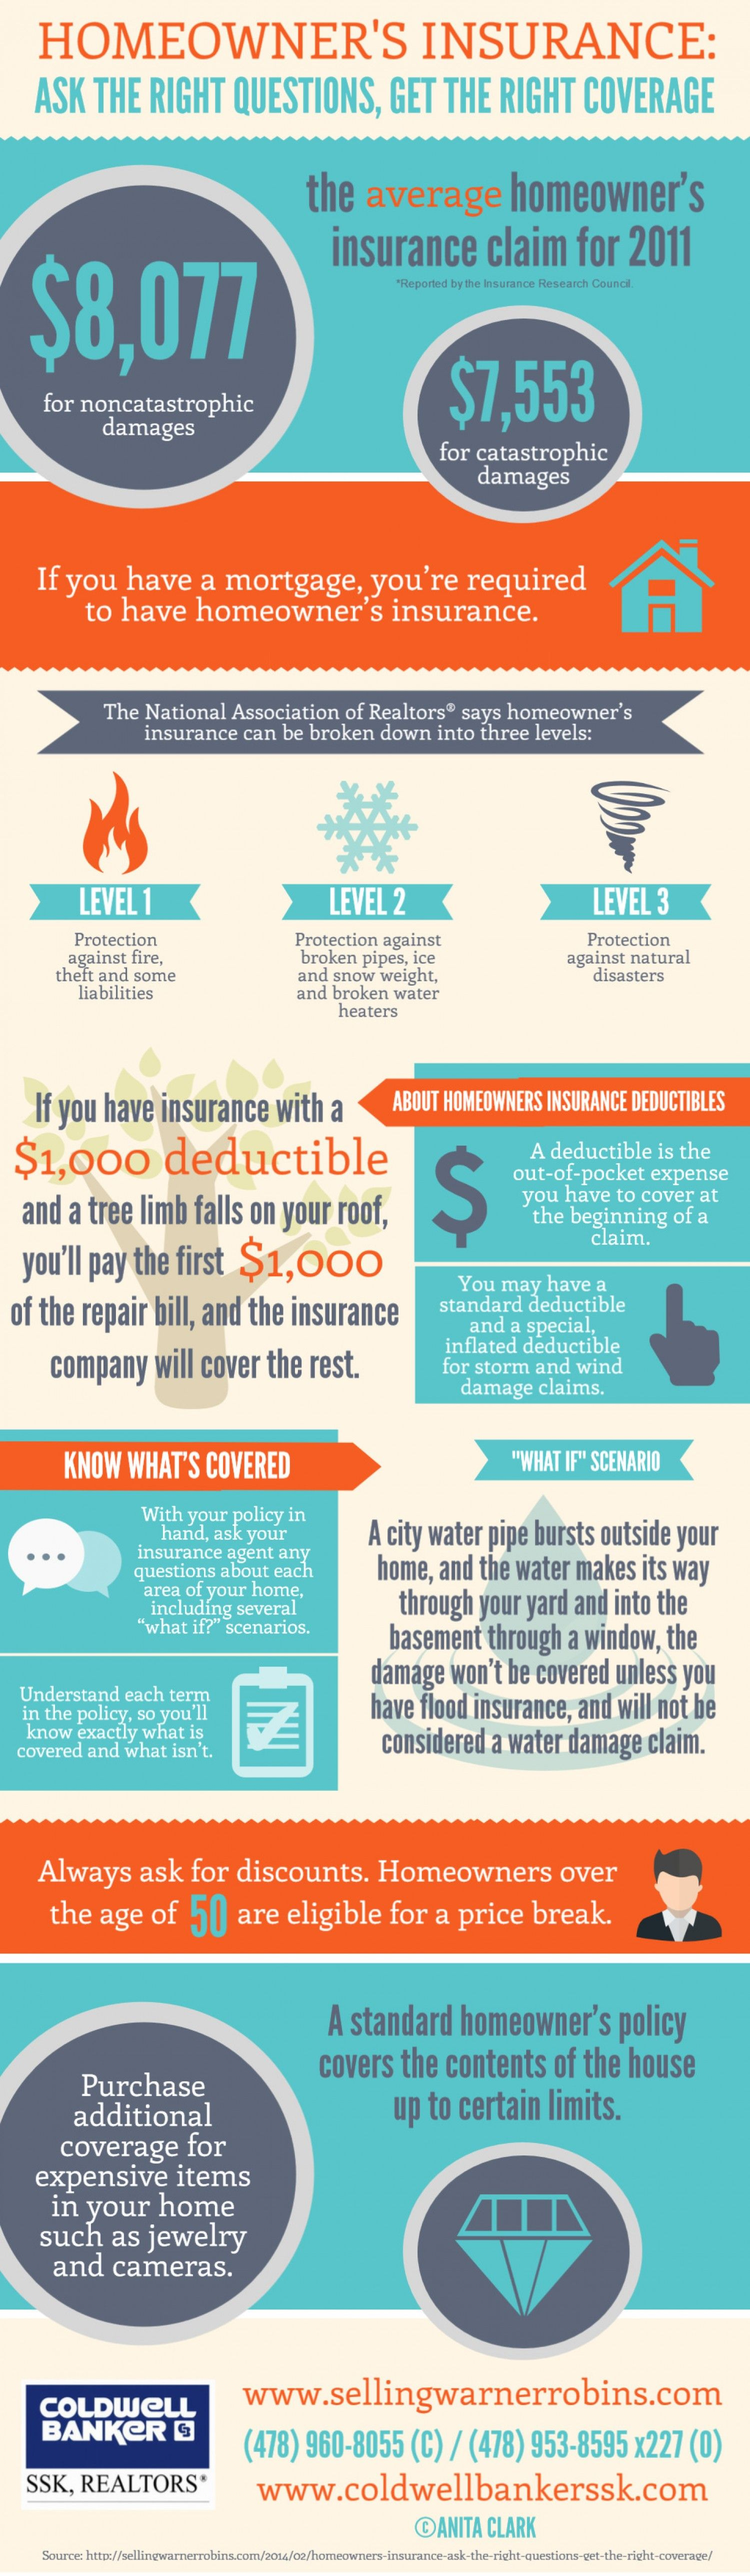 Homeowner S Insurance Asking The Right Questions Getting The Right Coverage Infographic Infographic Realestate Realtor Real Estate Buyers Asking The Right Questions Real Estate Information